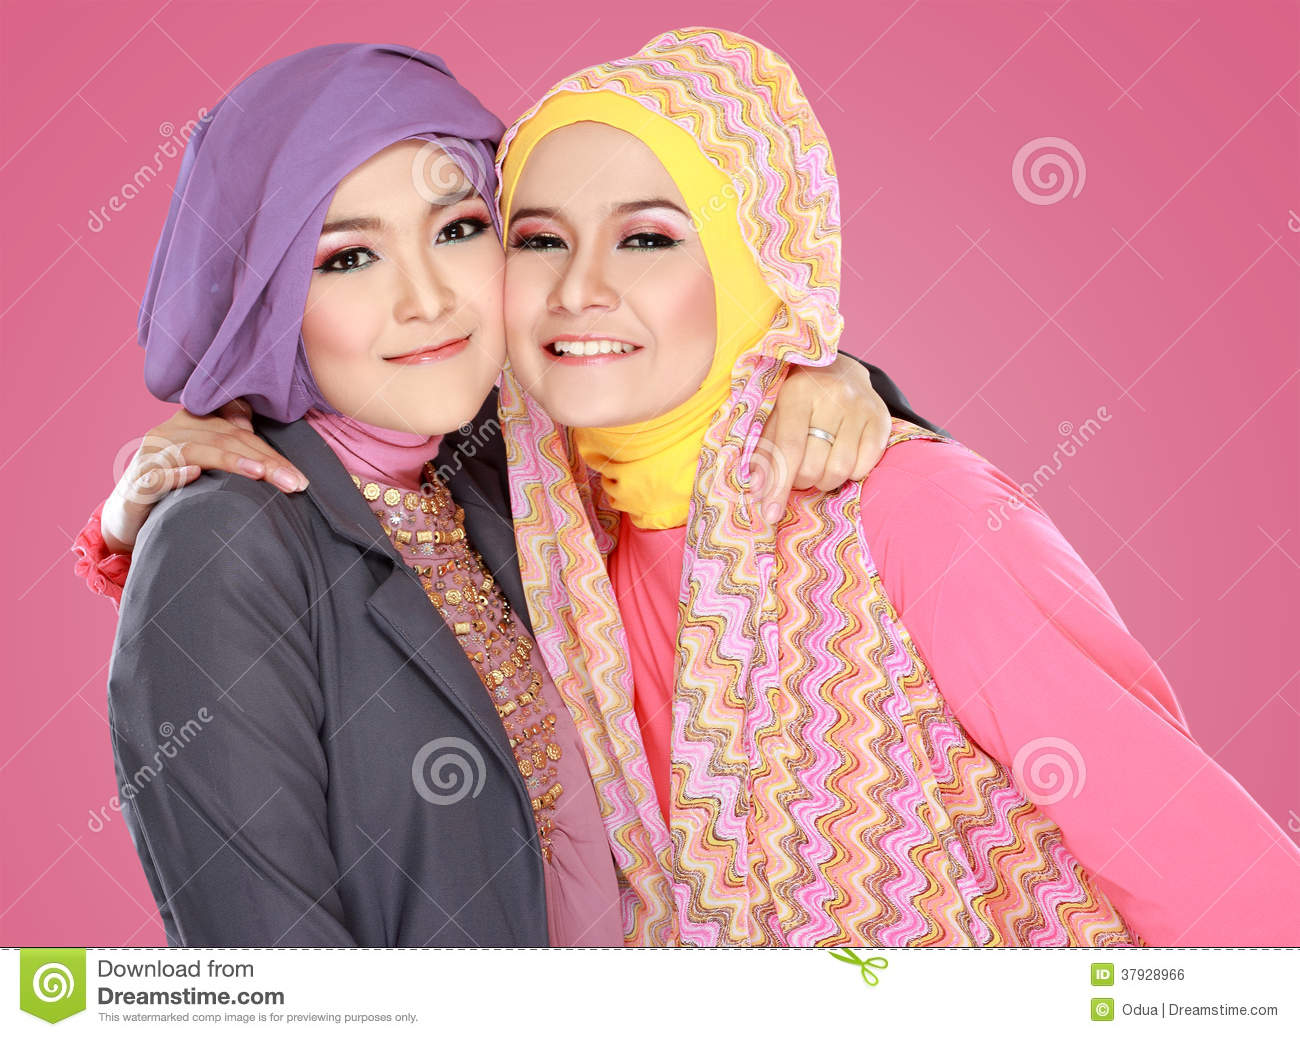 grassy muslim girl personals Want to date a muslim girl and do not know how to start check our top tips of how to date a muslim woman.